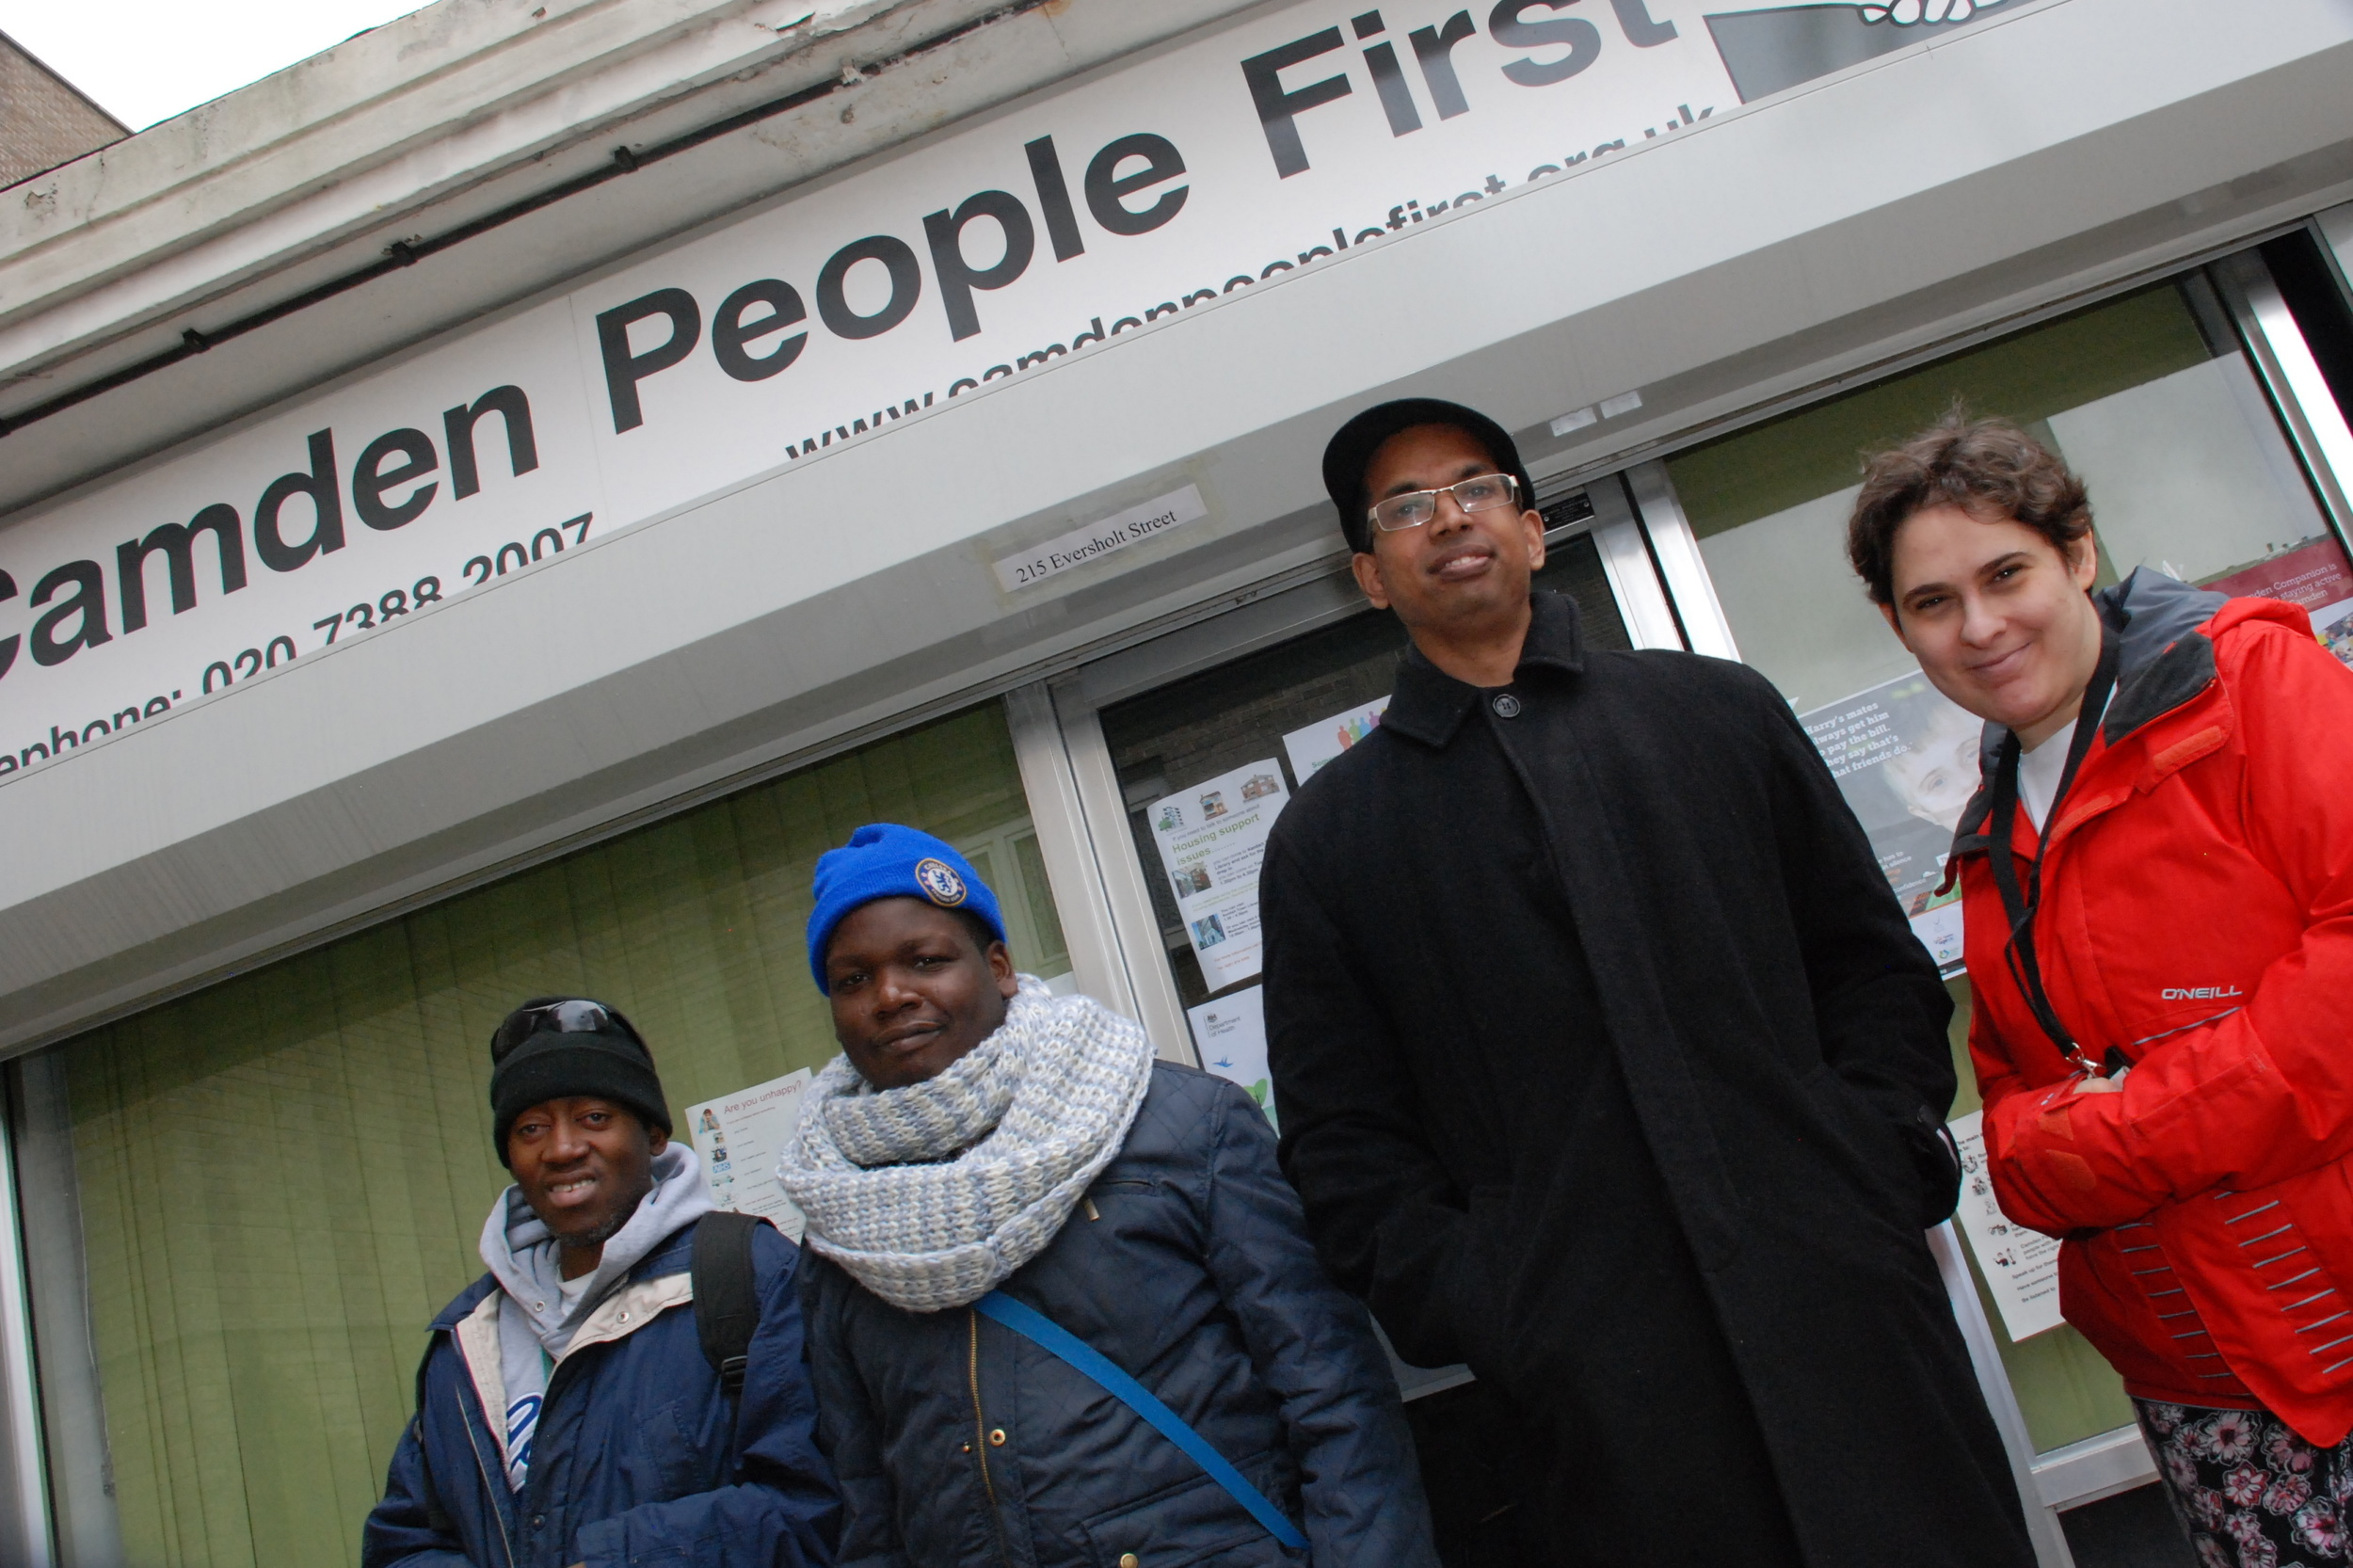 Camden People First's Easy Read Editors